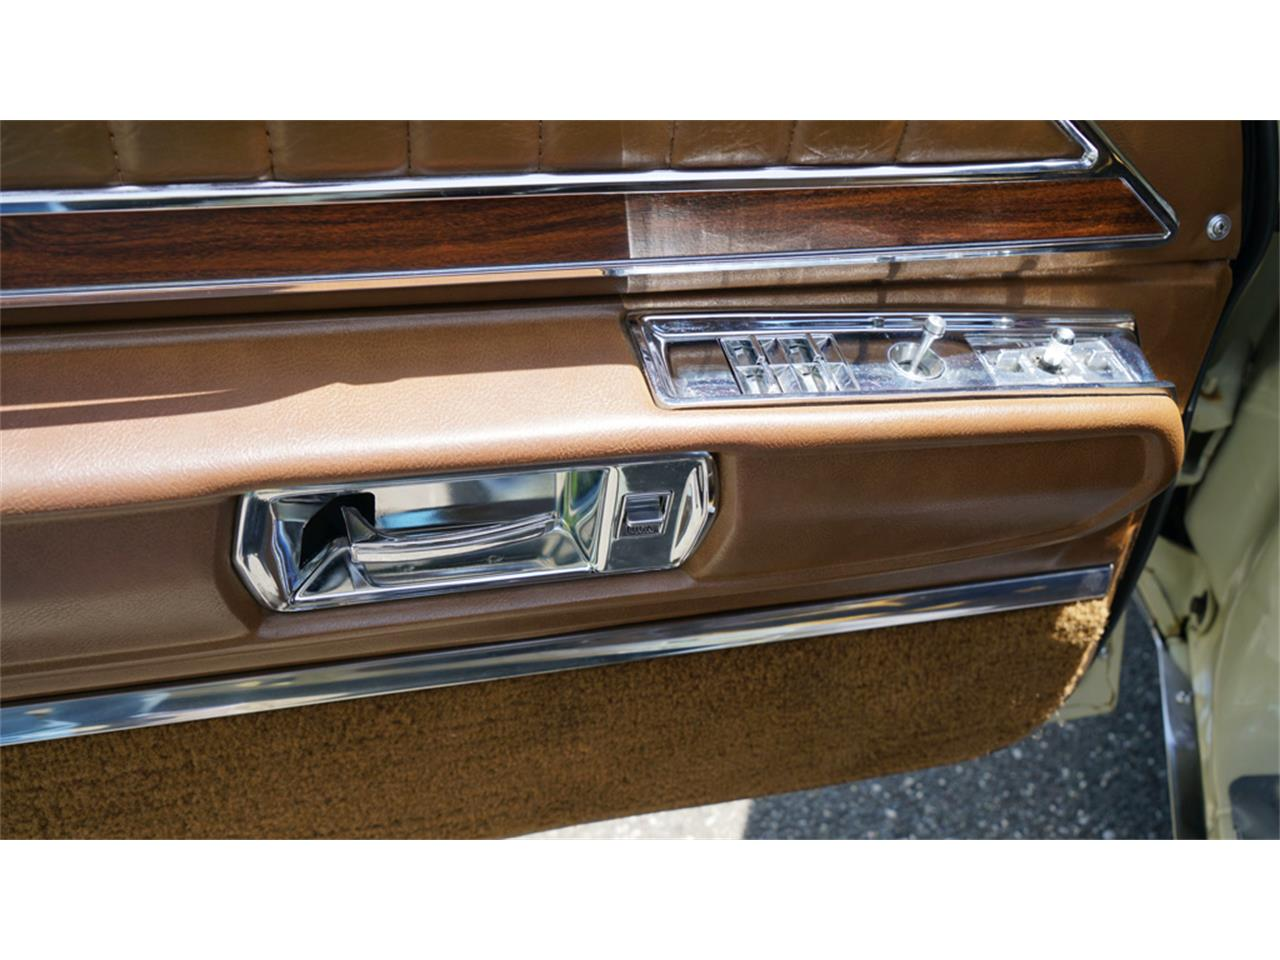 Large Picture of '72 Buick Electra 225 located in New York - $32,500.00 Offered by Fiore Motor Classics - QAJE